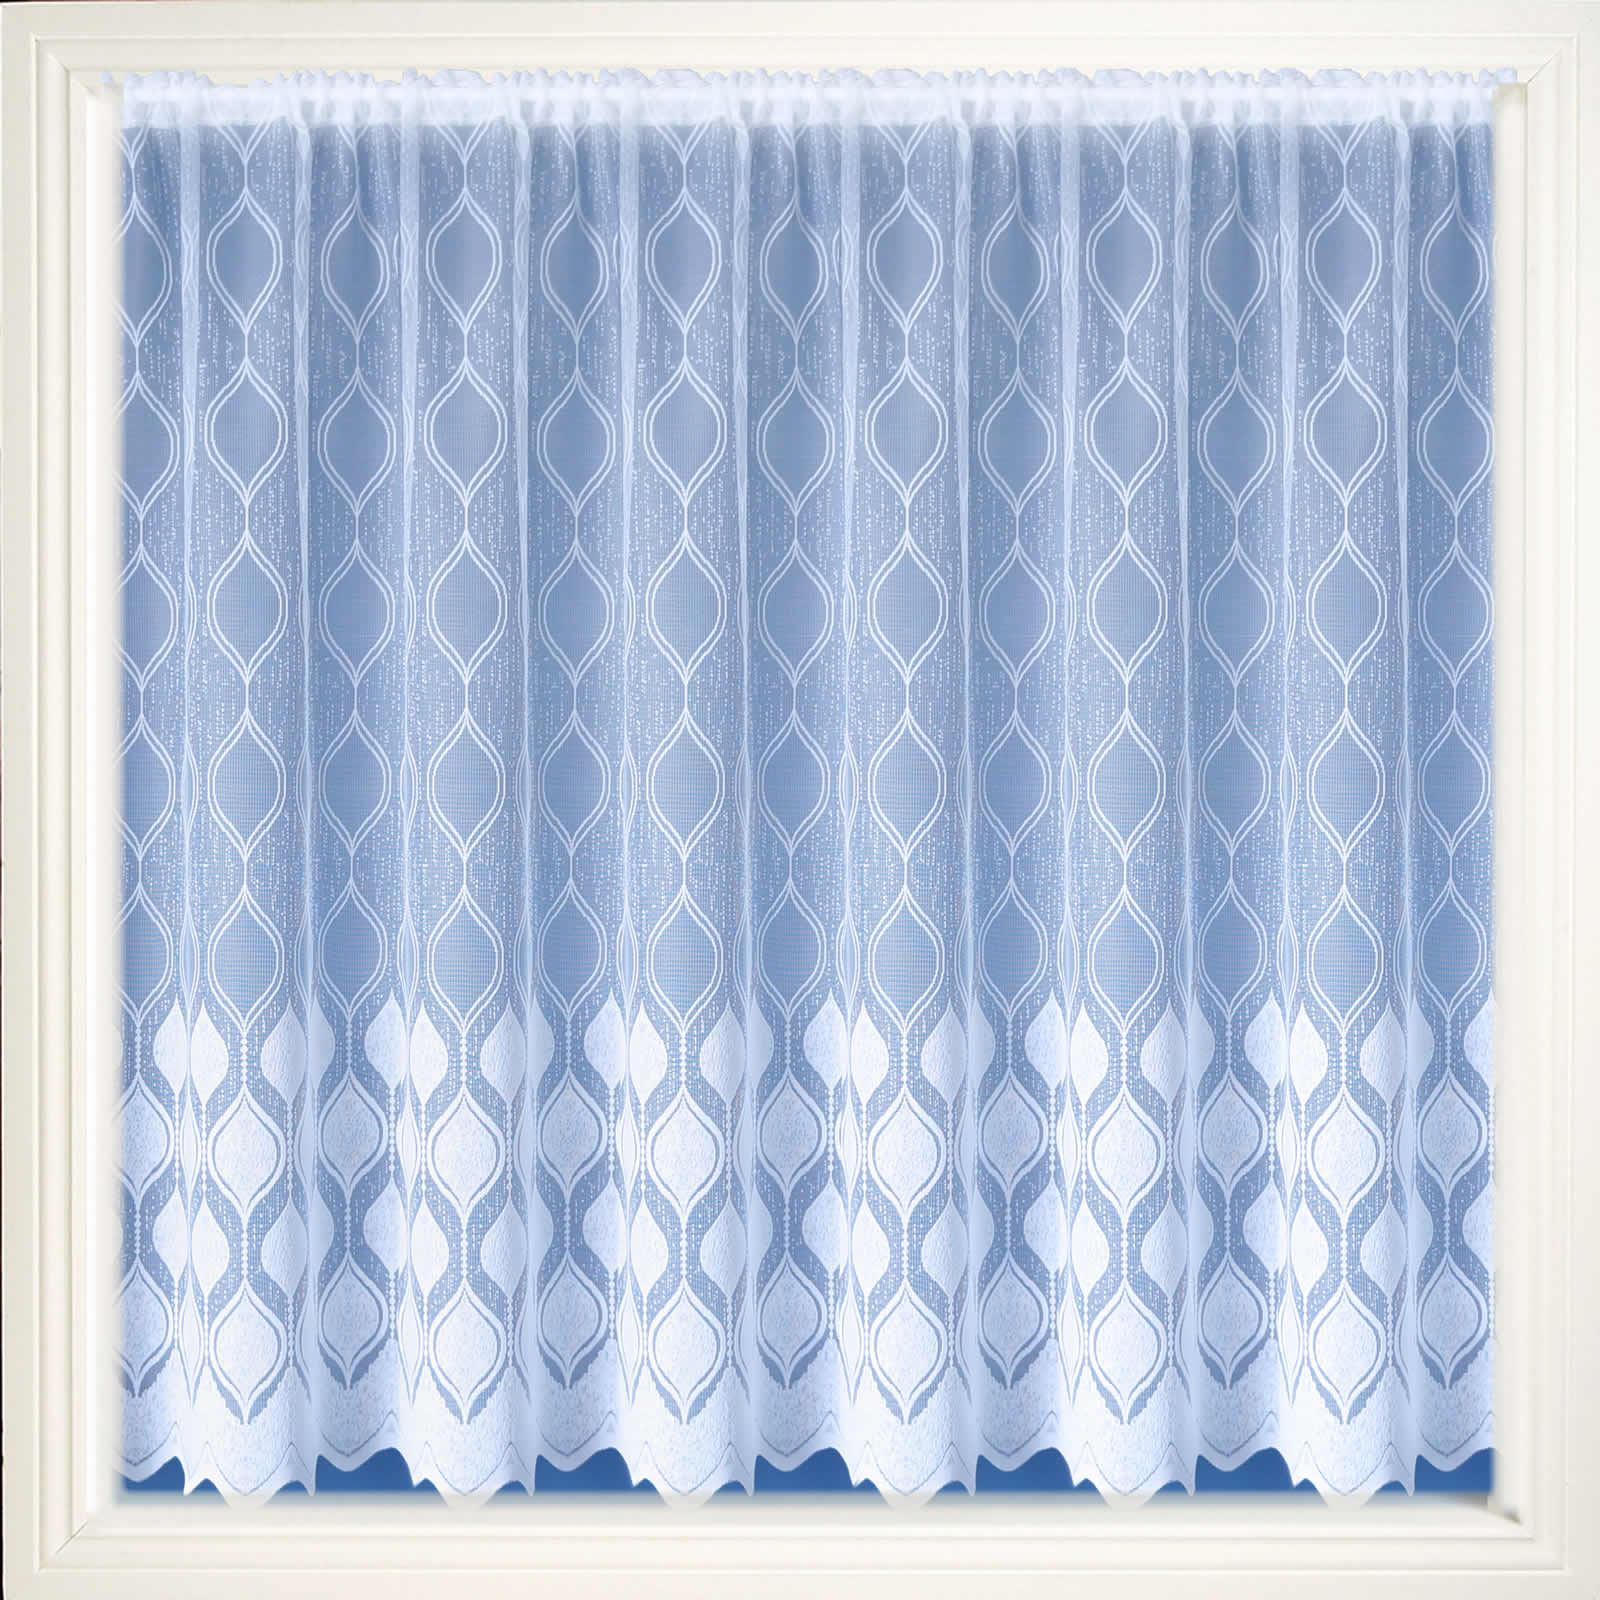 Modern white net curtain luxury lace curtains nets sold by for Window net curtain